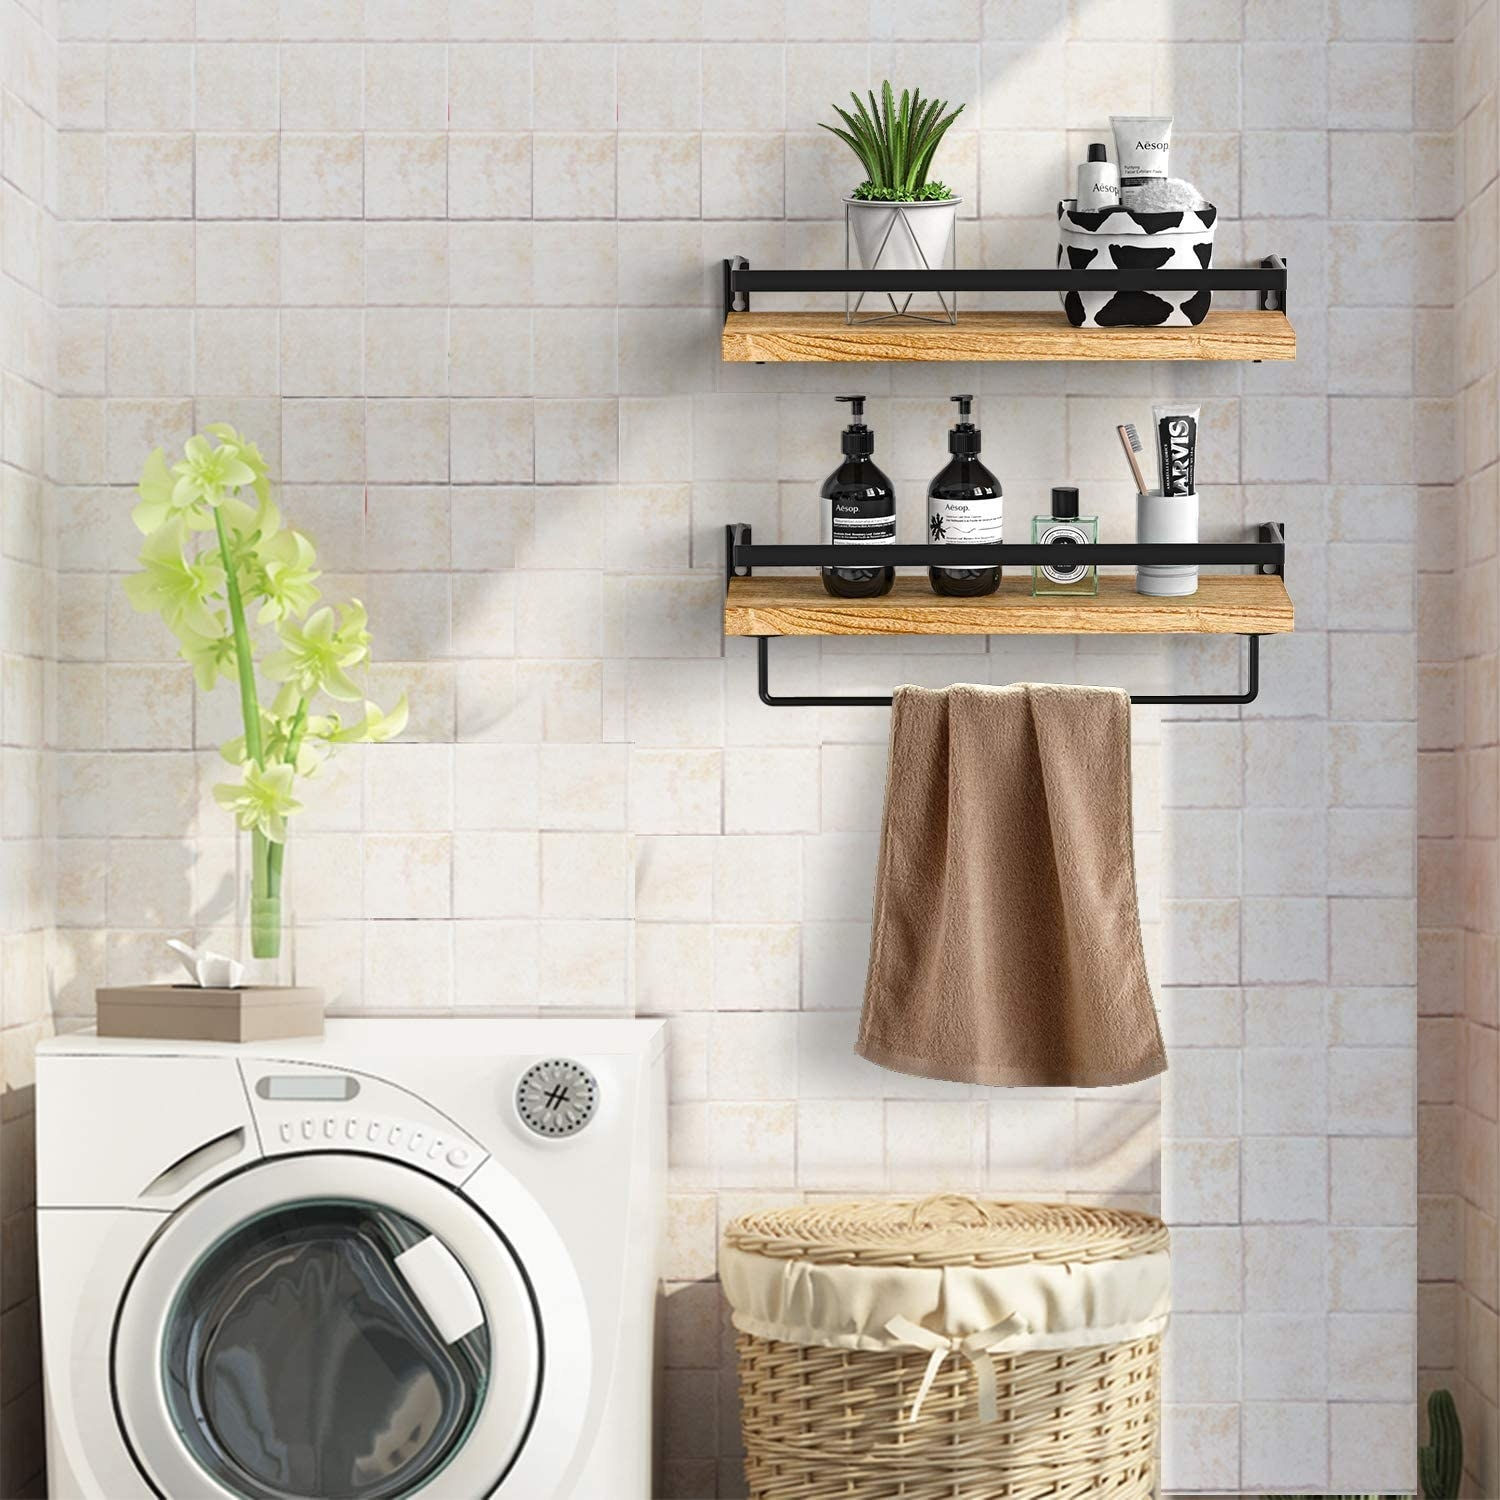 The pair of floating shelves mounted on a wall in a laundry room